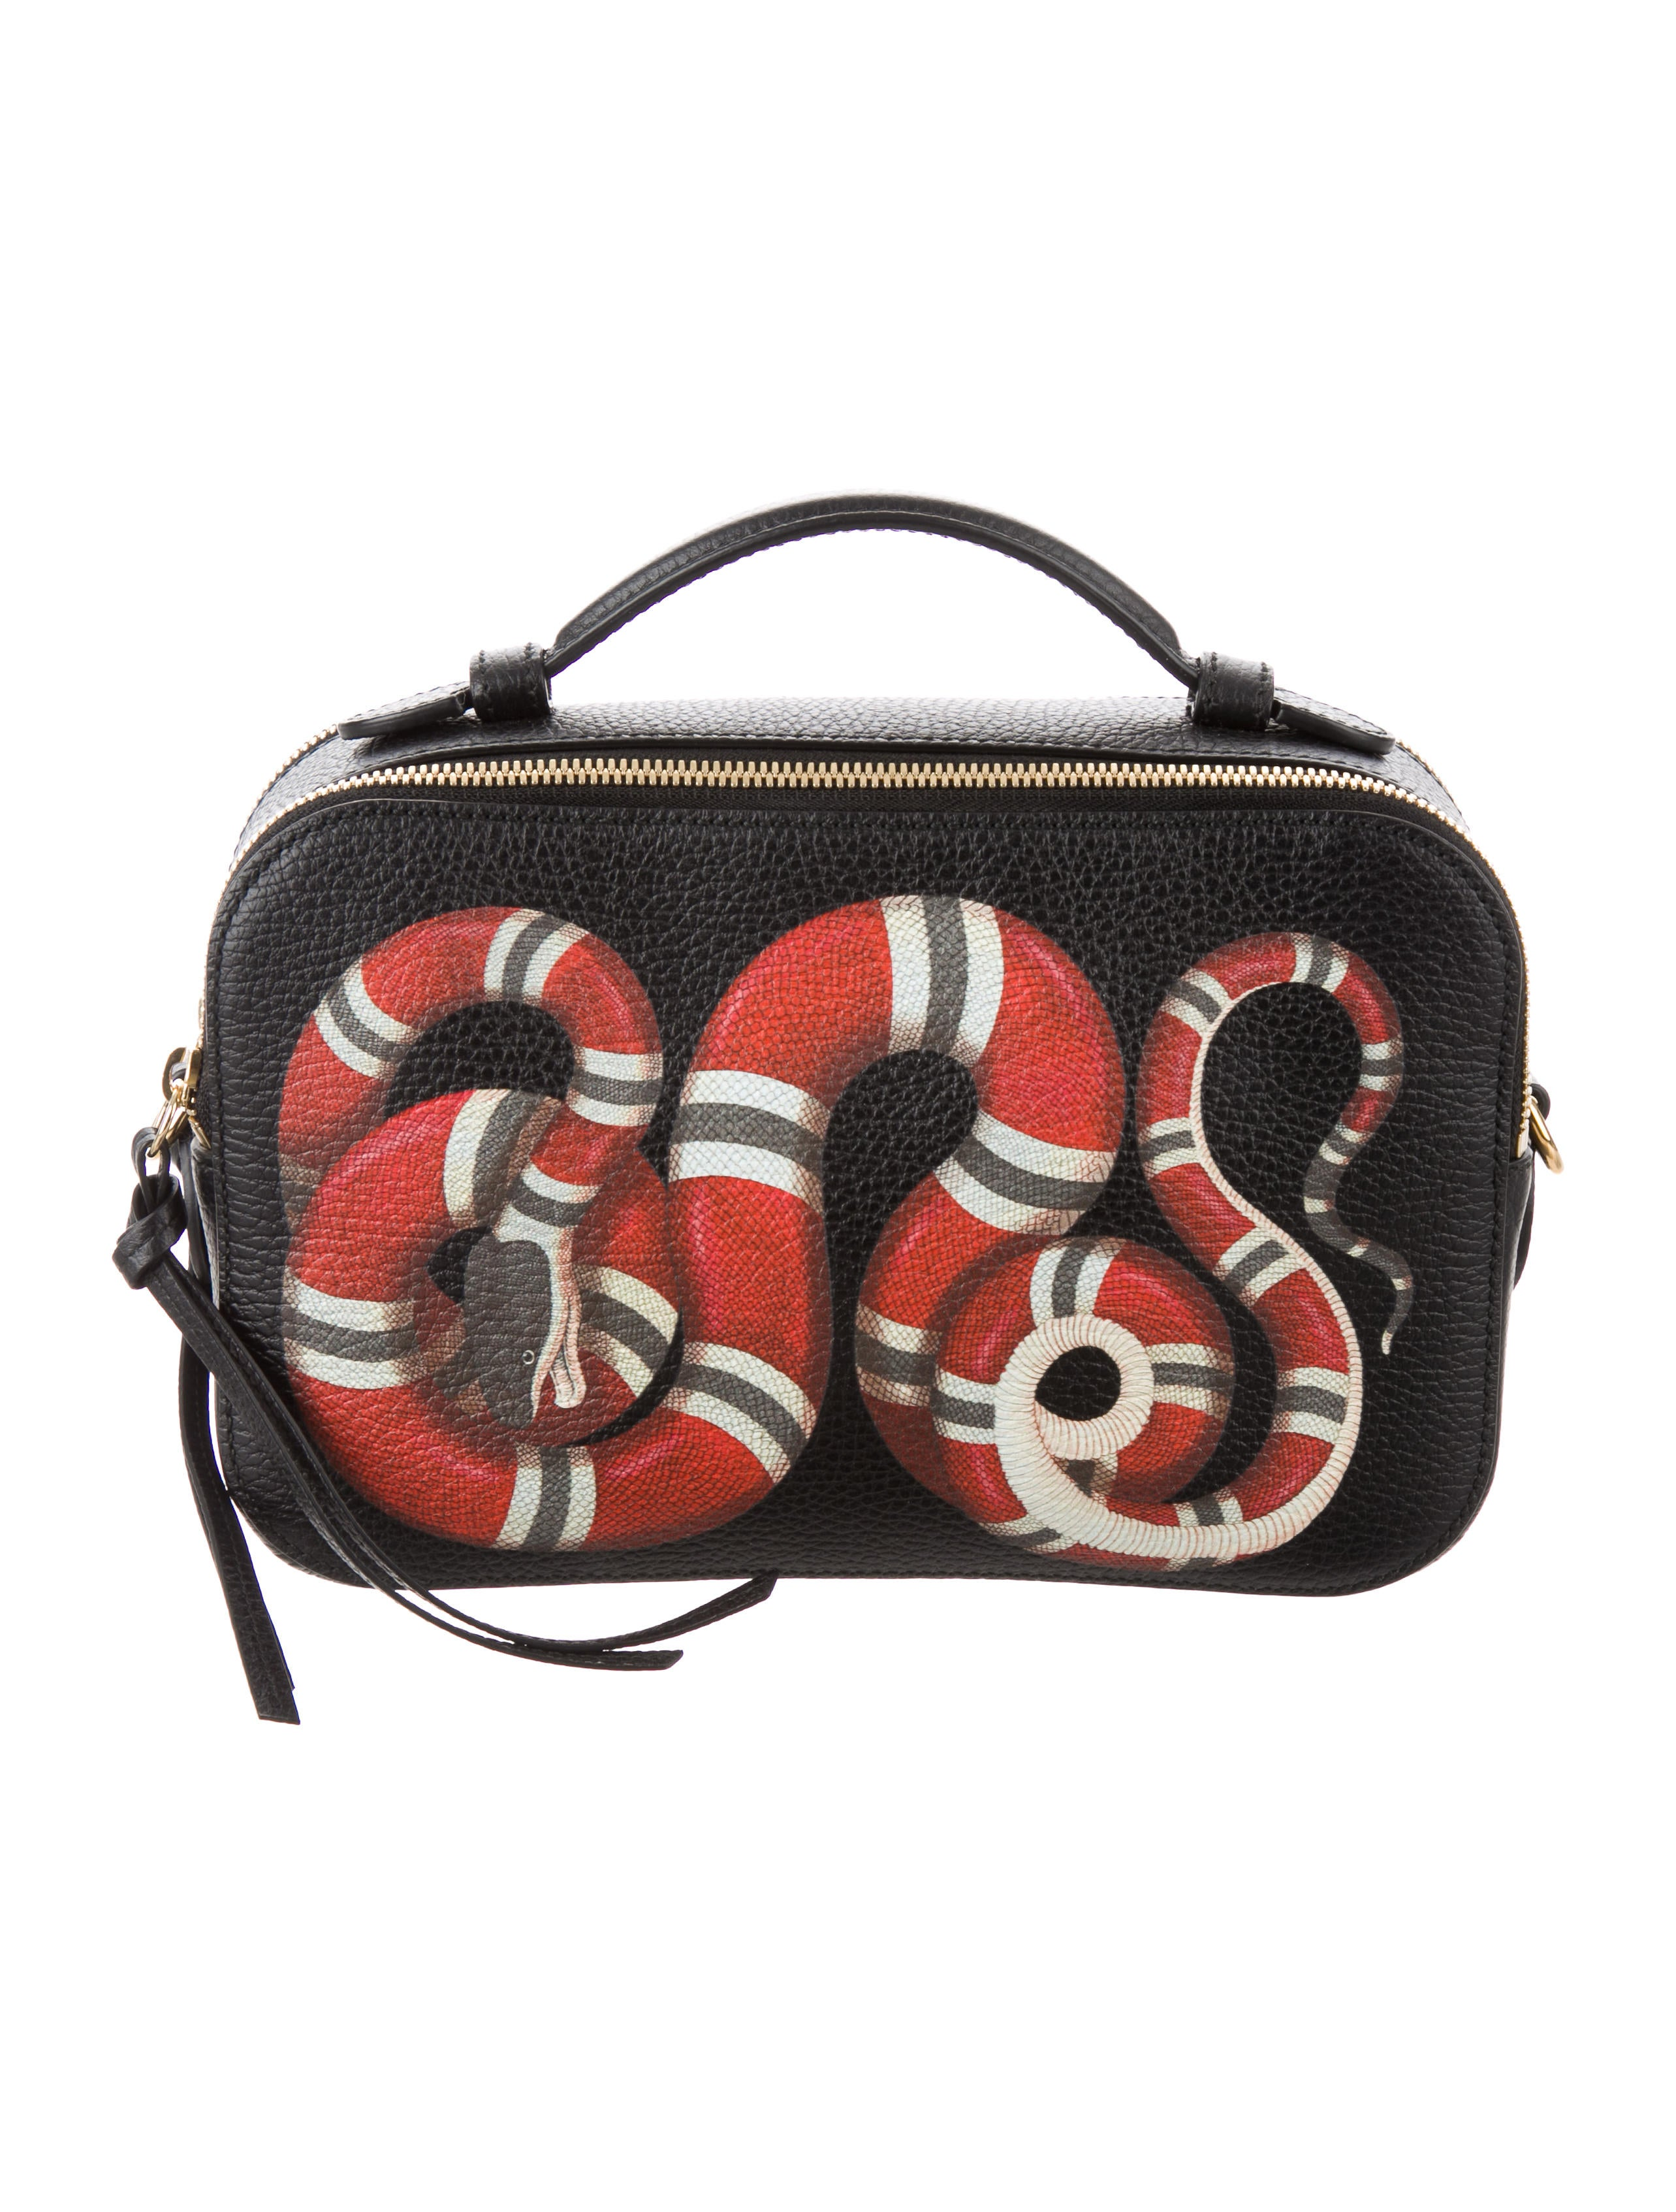 8cf7b2126 Gucci Kingsnake Shoulder Bag - Handbags - GUC199546 | The RealReal